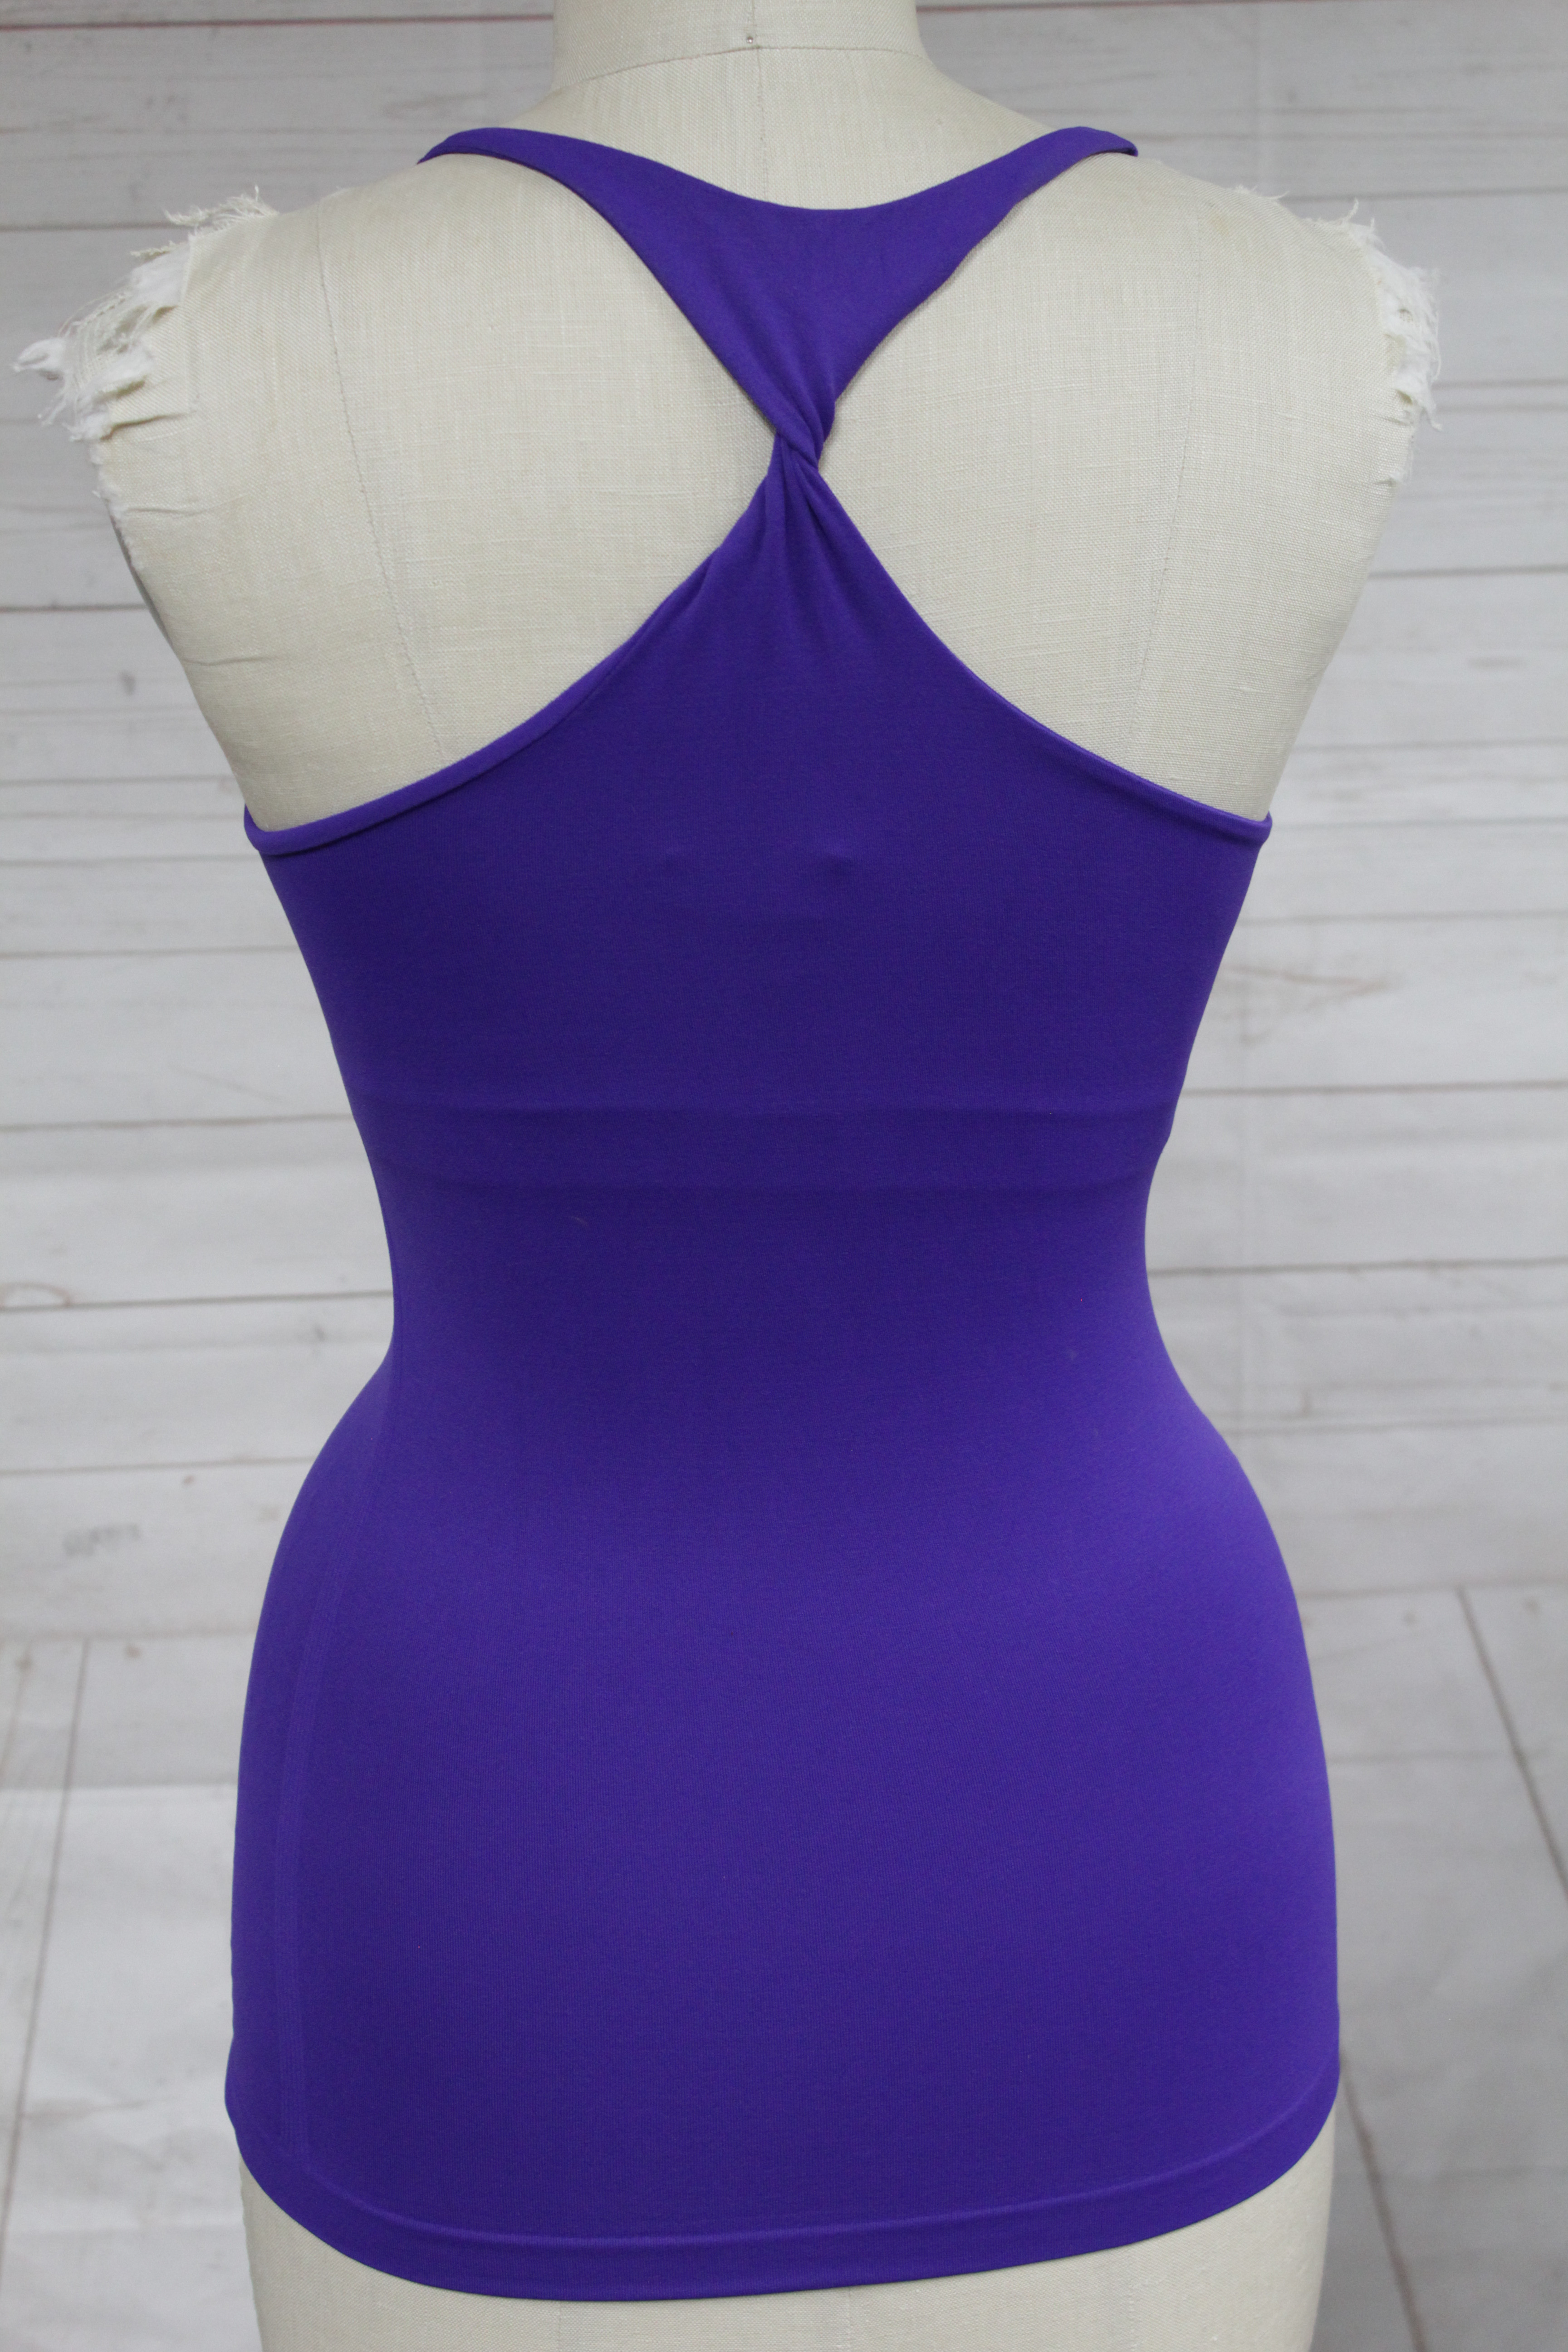 New-Bebe-Womens-The-New-Racerback-Tank-Top-Seamless-Knot-Racerback-Cami-Xs-L-24 thumbnail 21